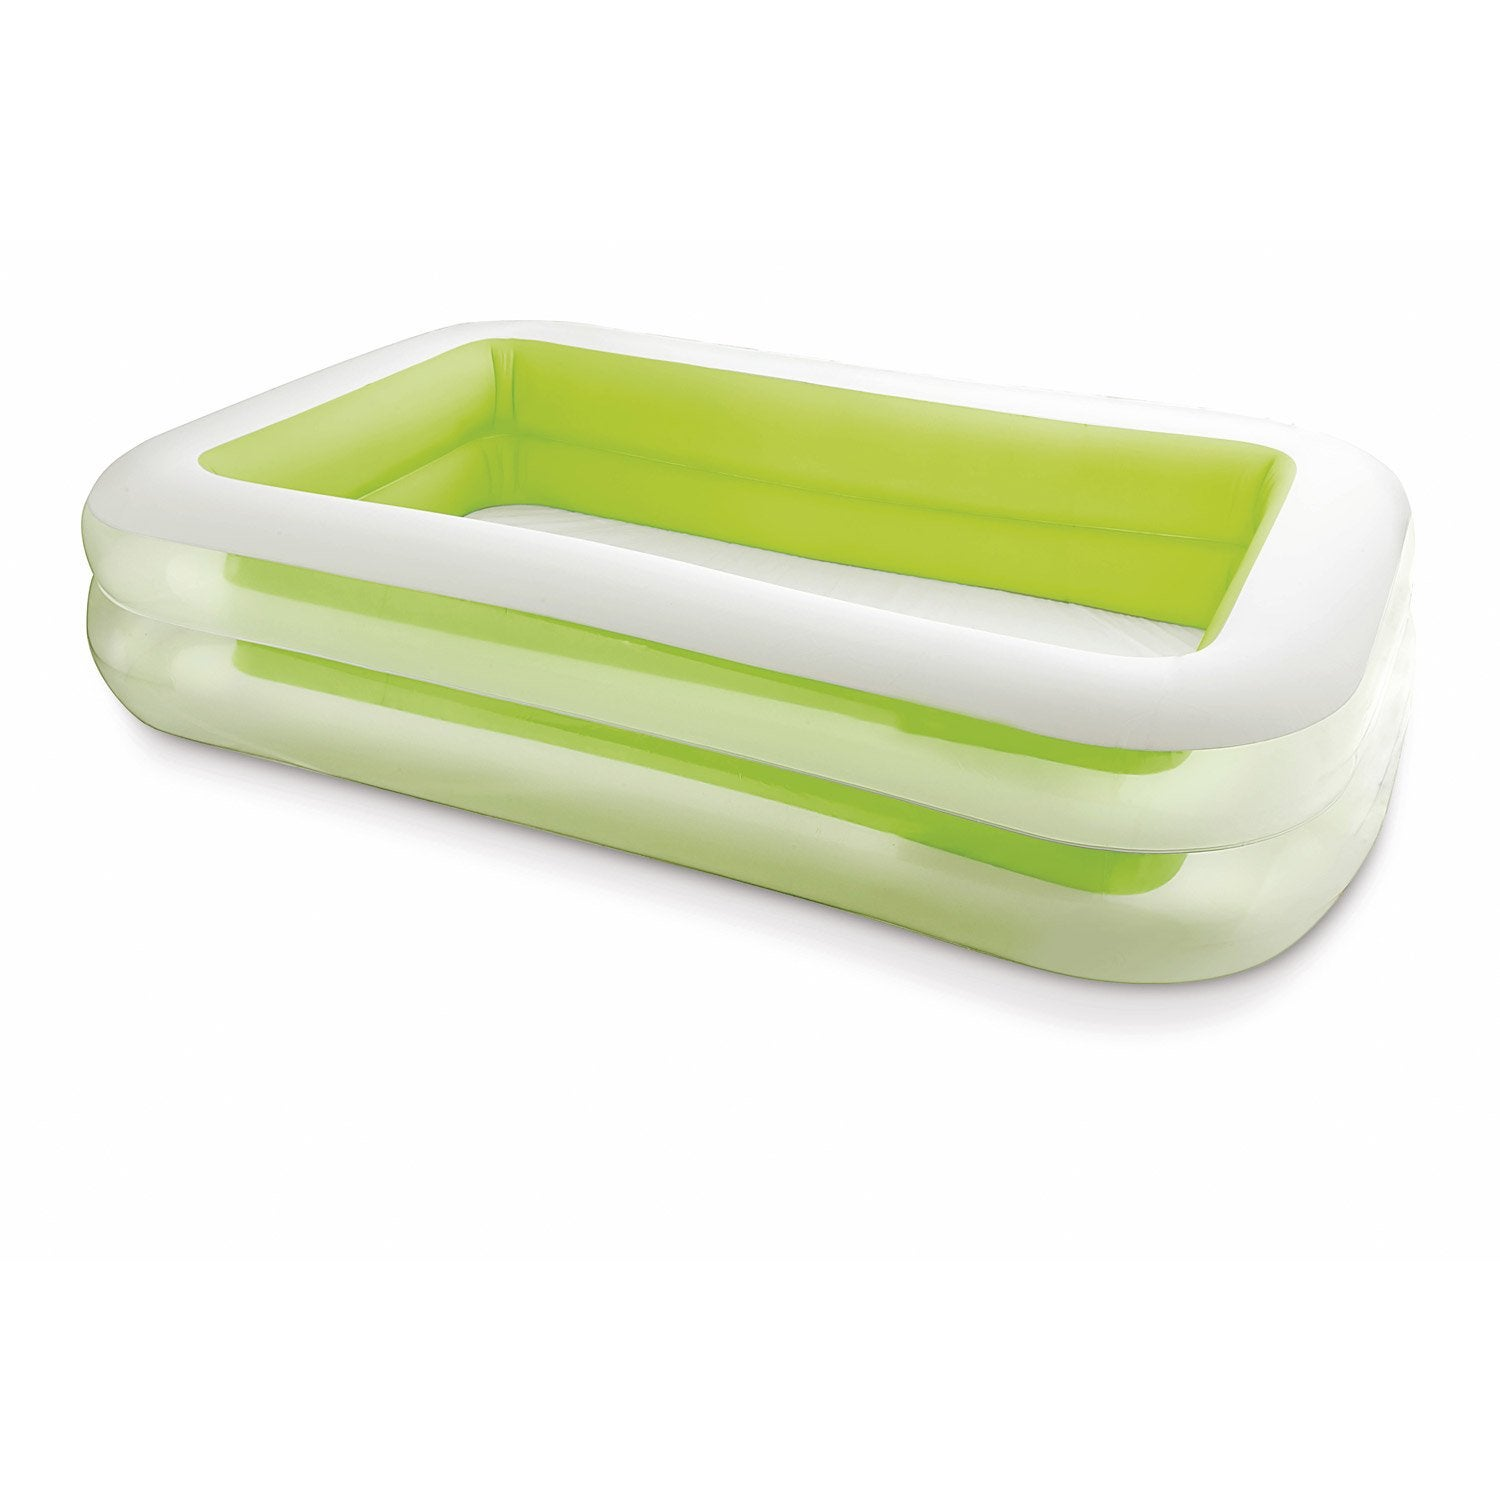 Design piscine gonflable avec toboggan toulouse 22 for Piscine gonflable intex ronde